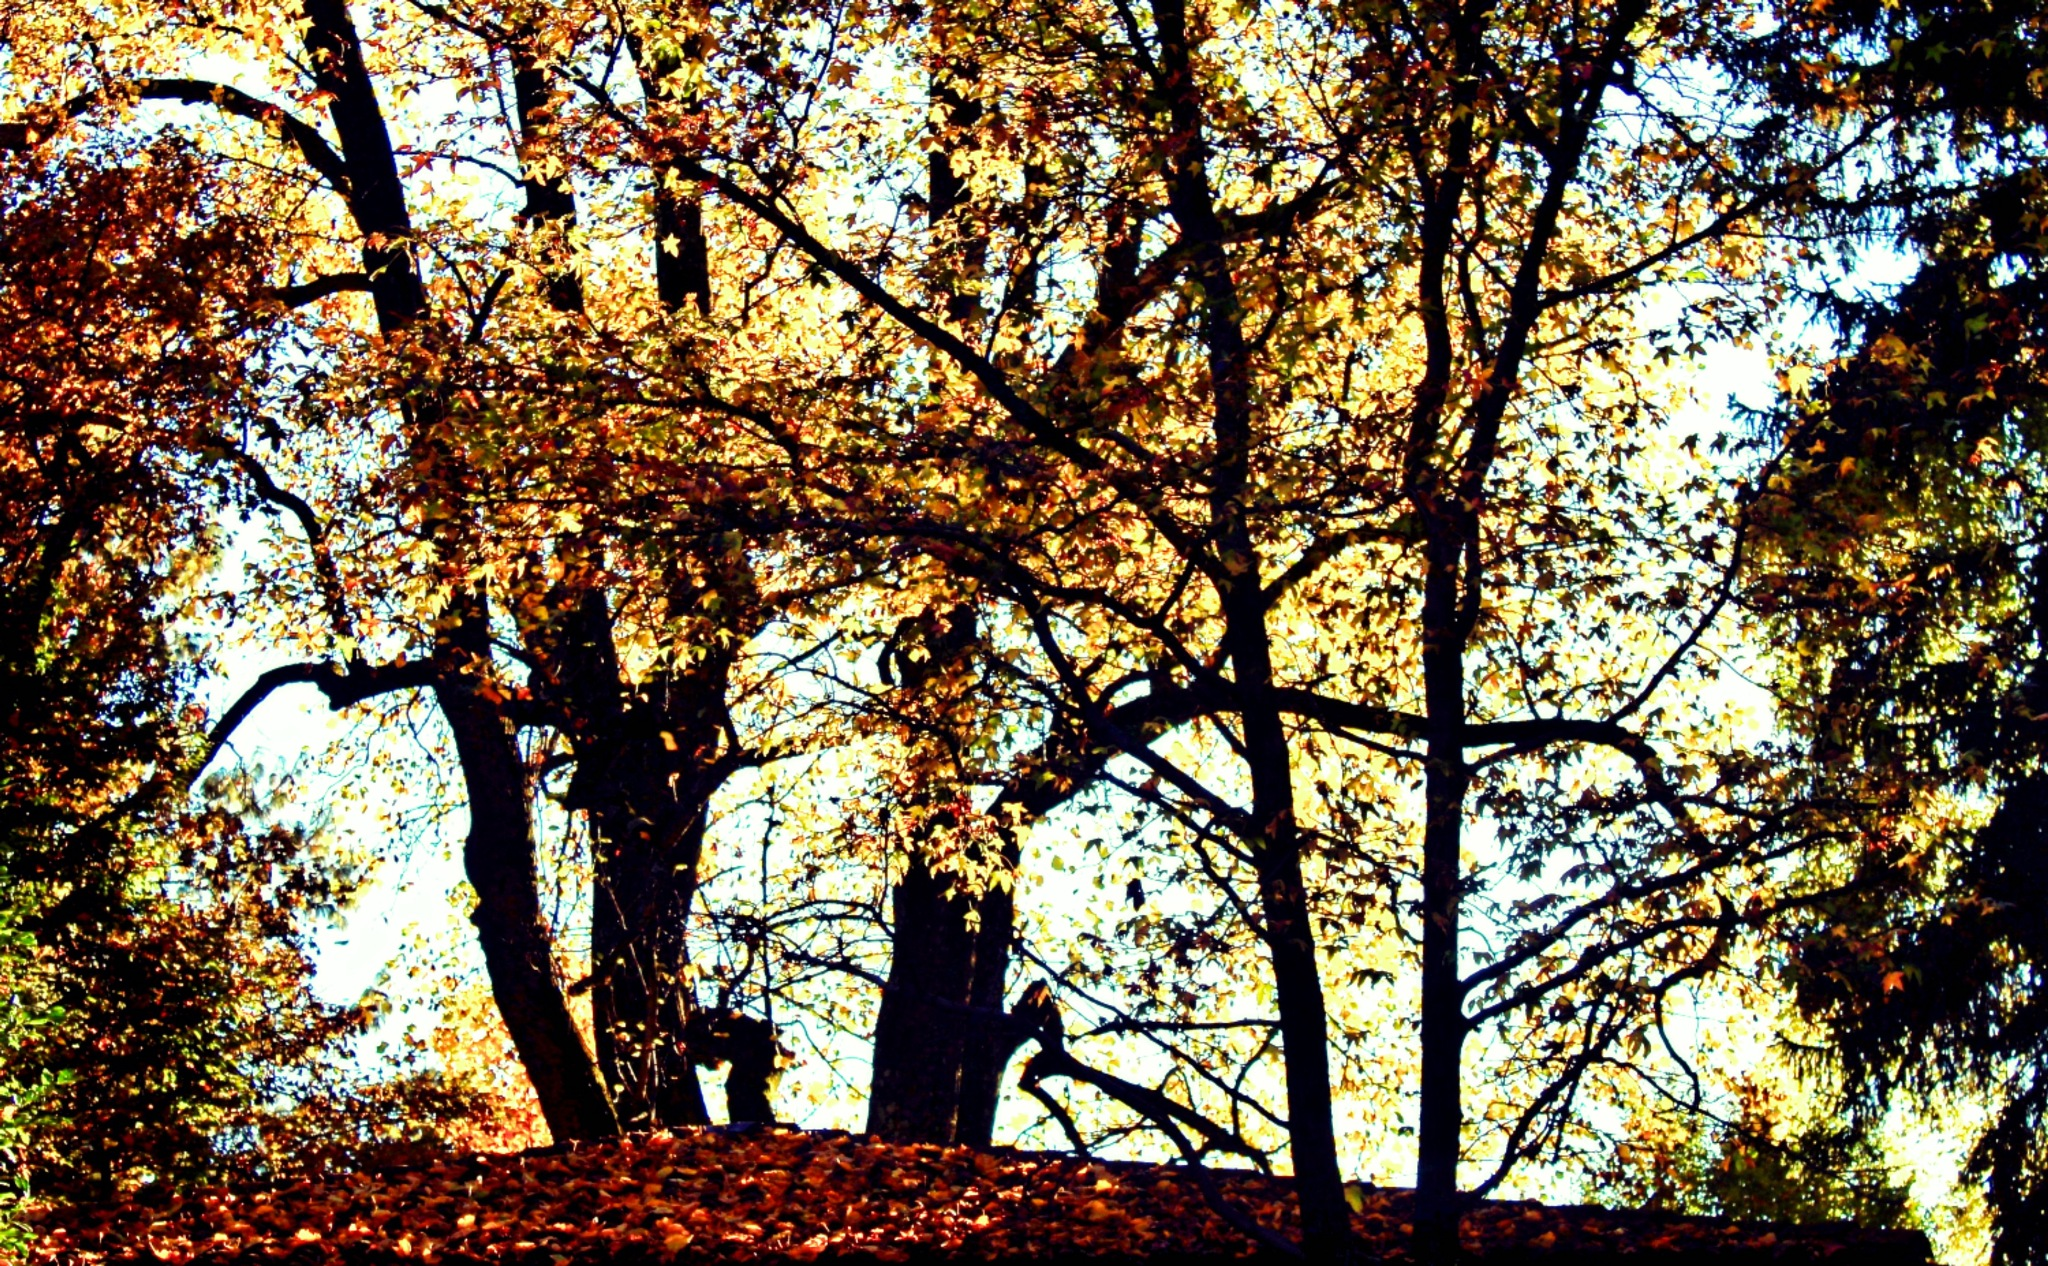 Autumn Silhouettes by LoryC